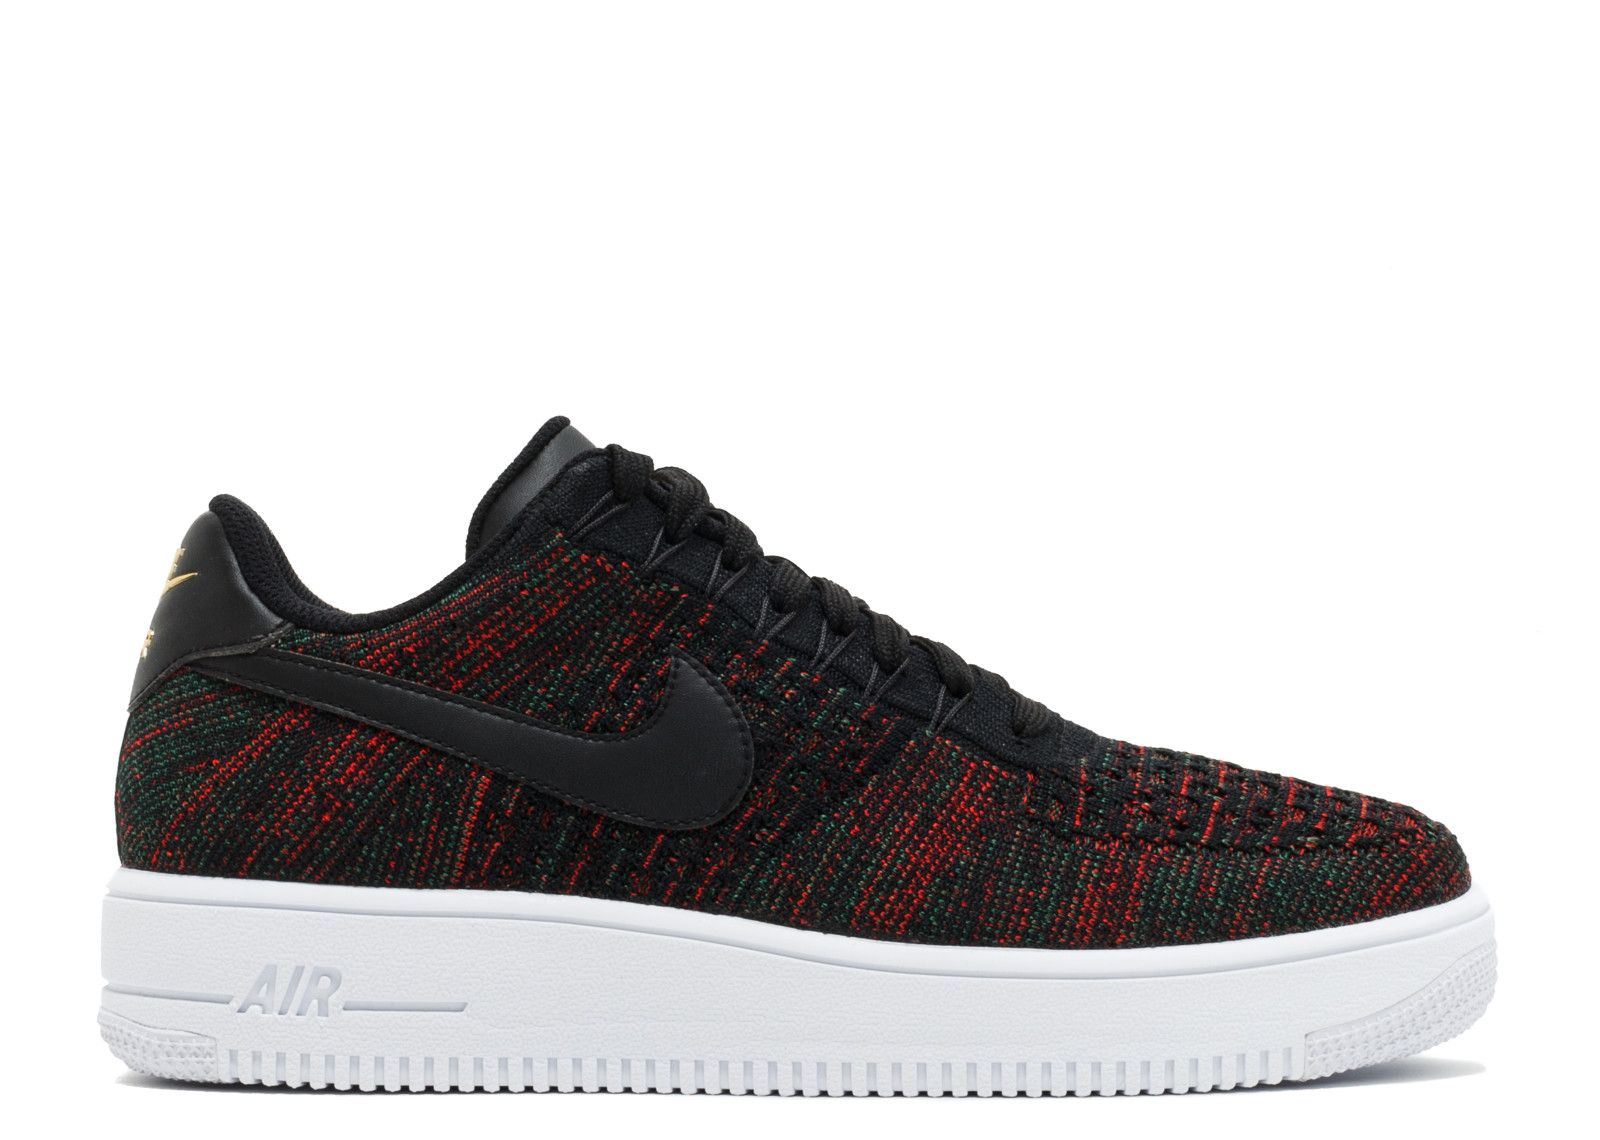 new arrival 5032b 3d818 Prev Air Force 1 Ultra Flyknit Low Black Gold ...